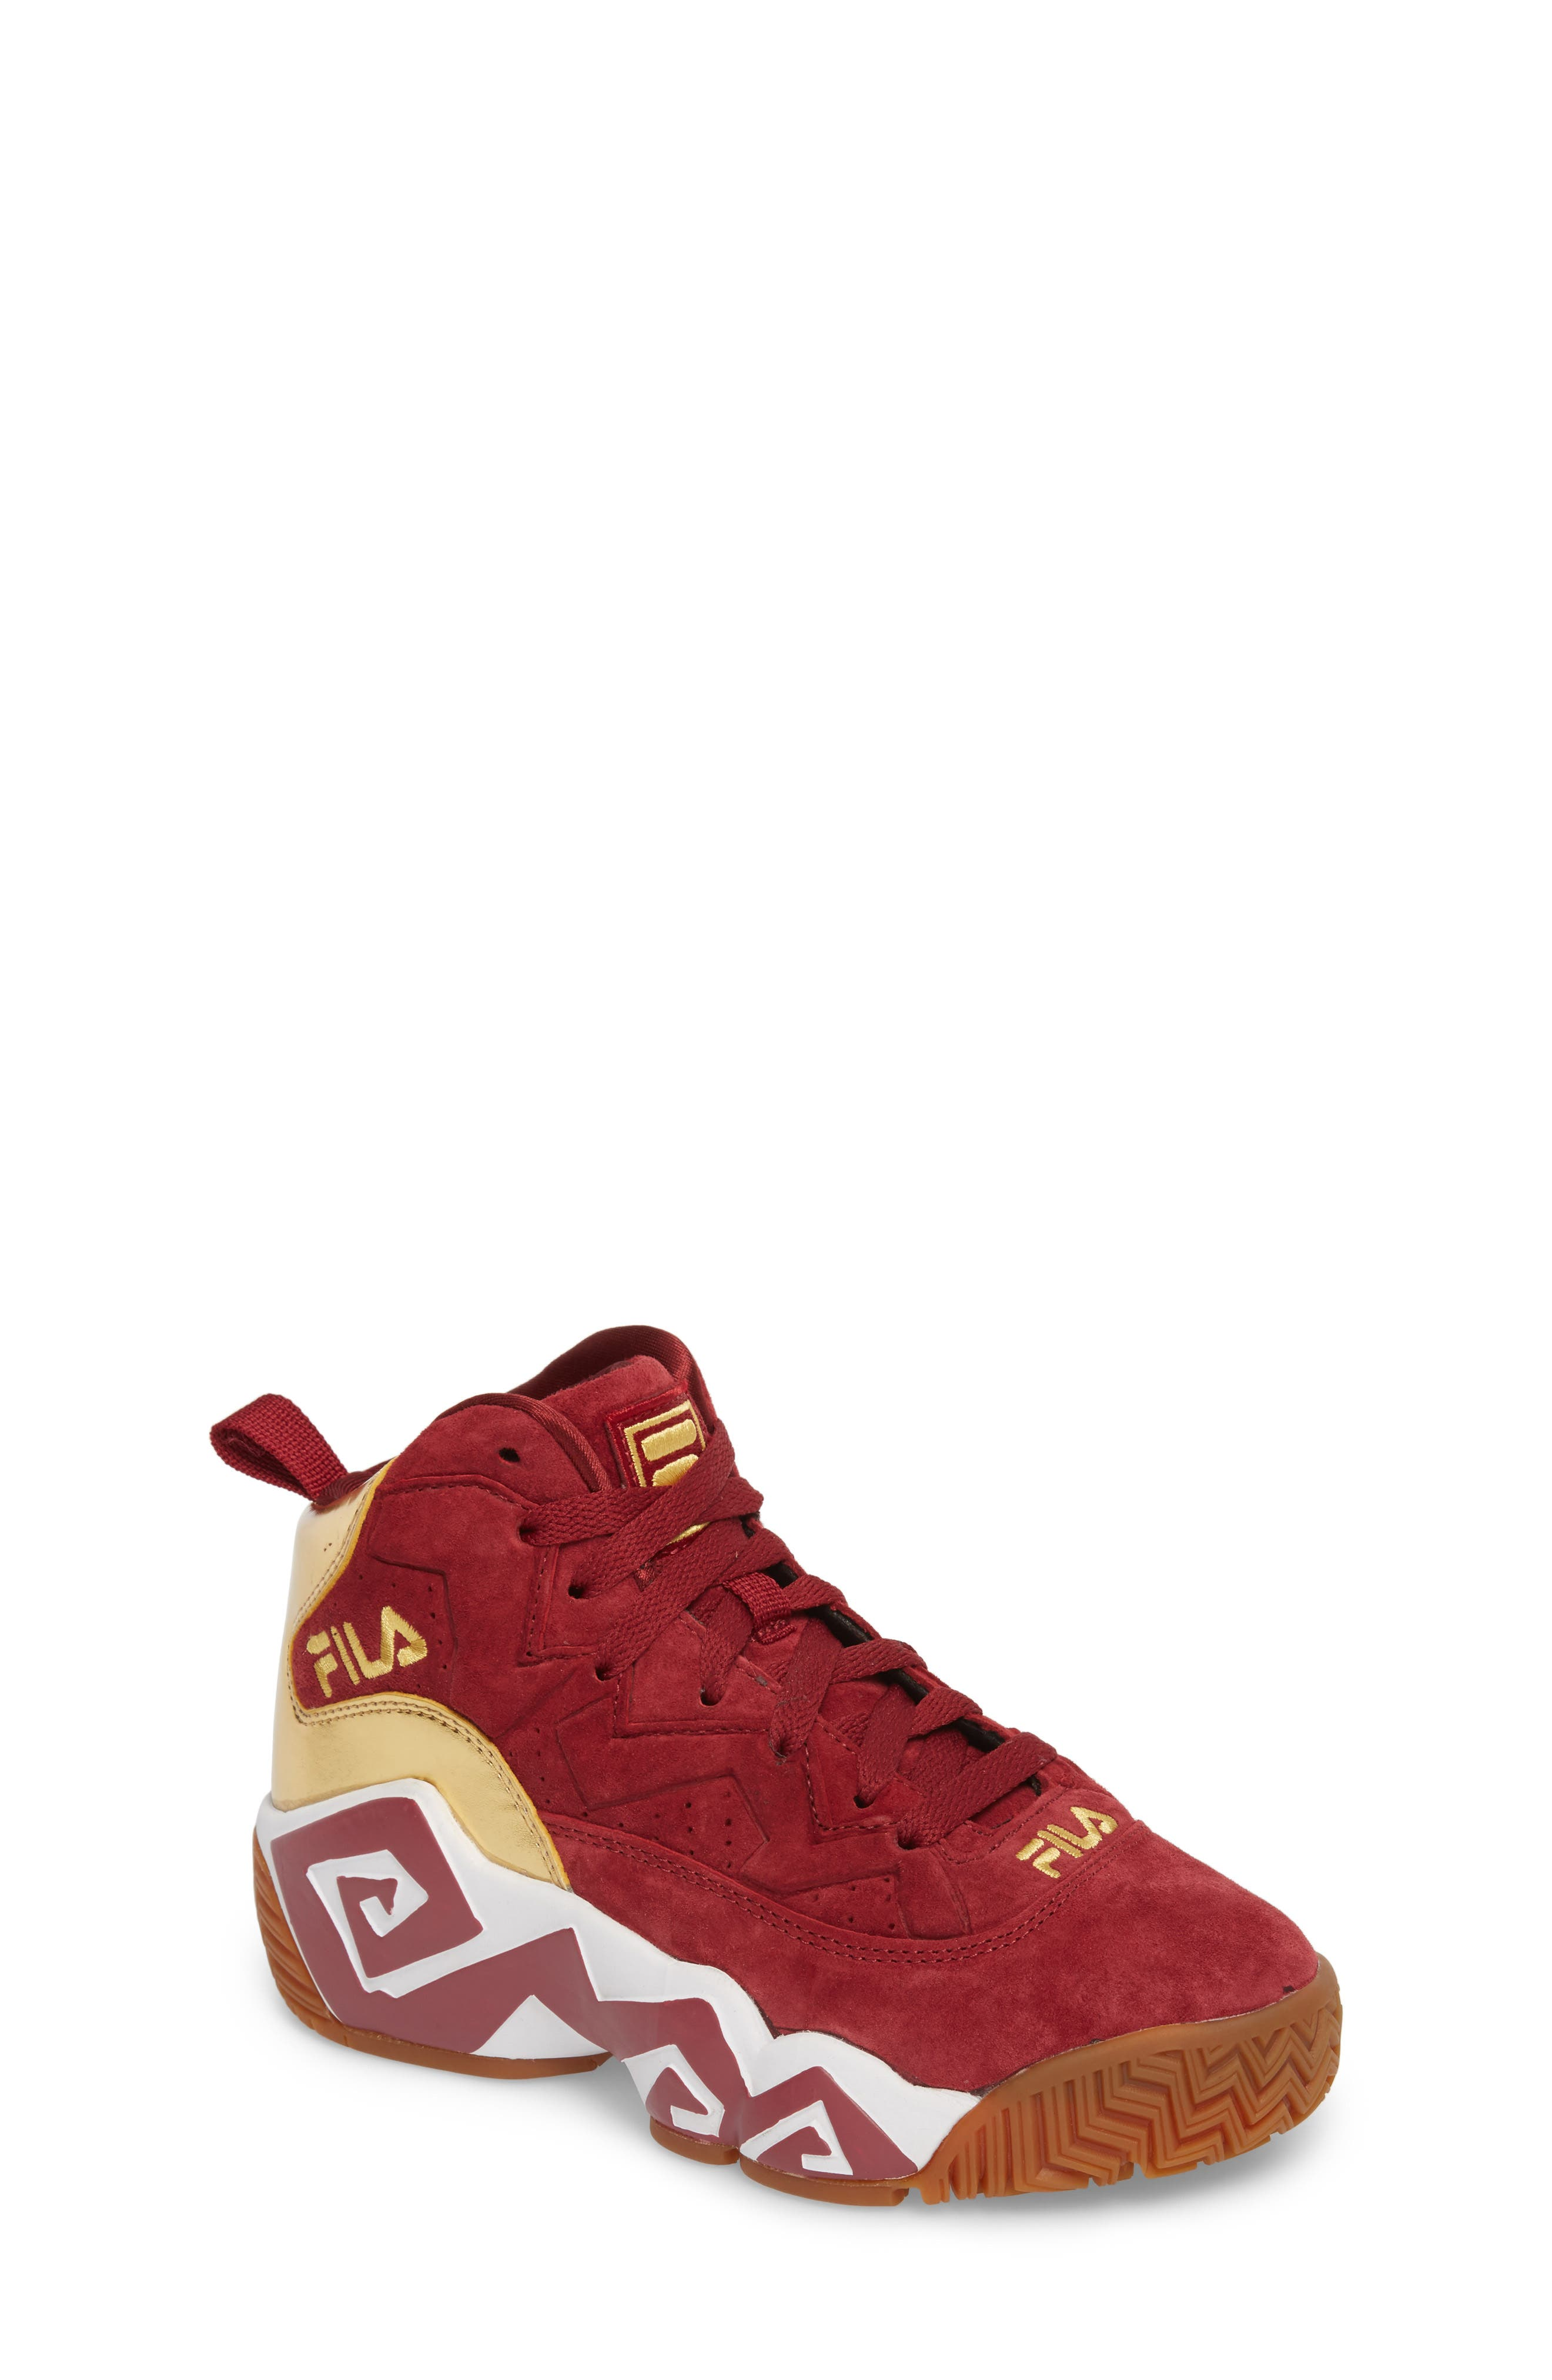 FILA Heritage Sneaker, Main, color, BIKING RED/ GOLD/ WHITE